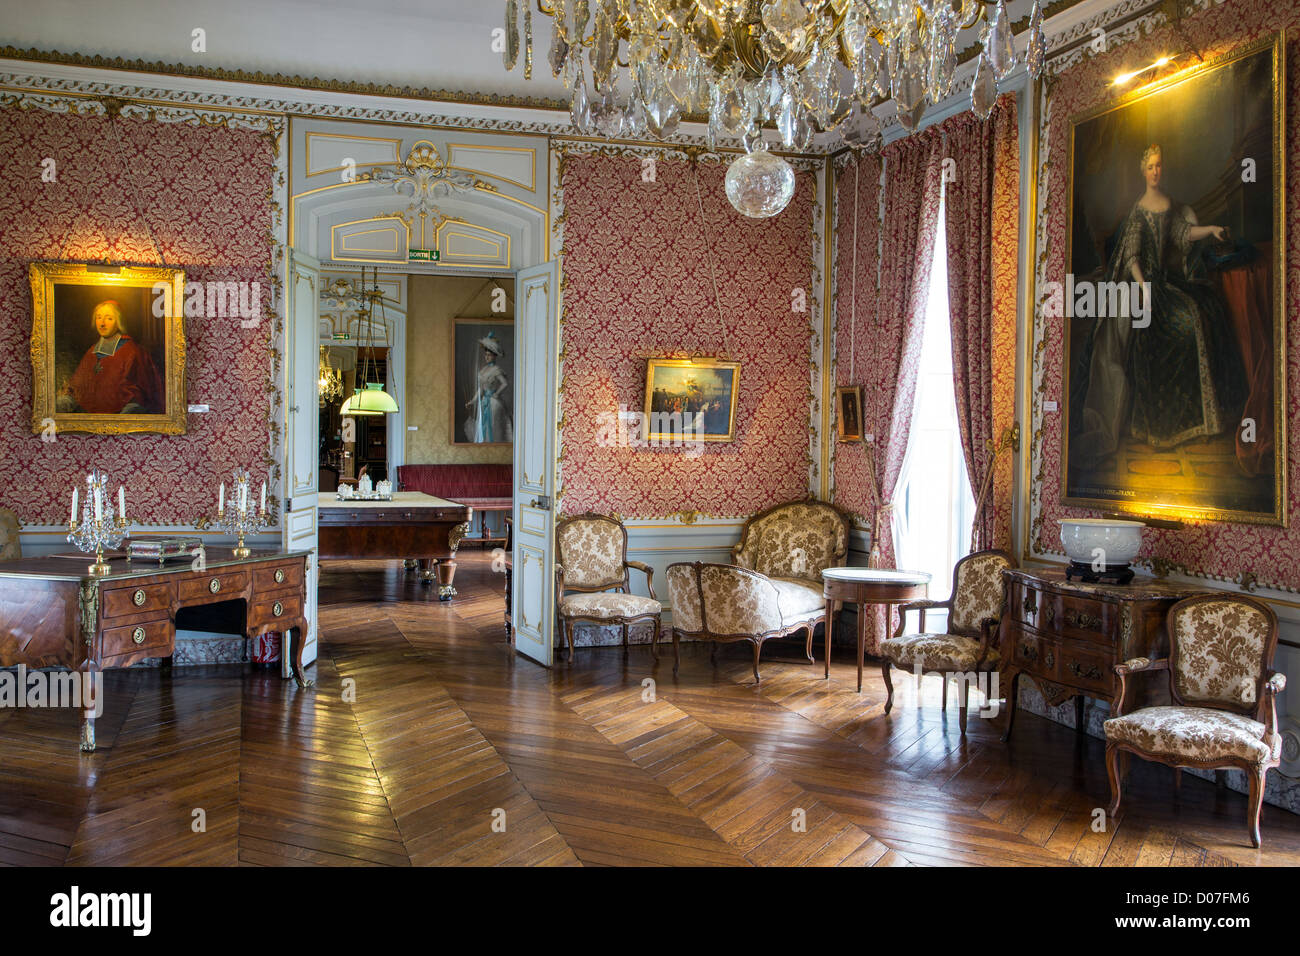 the great salon chateau de maintenon eure et loir 28 france stock photo royalty free image. Black Bedroom Furniture Sets. Home Design Ideas